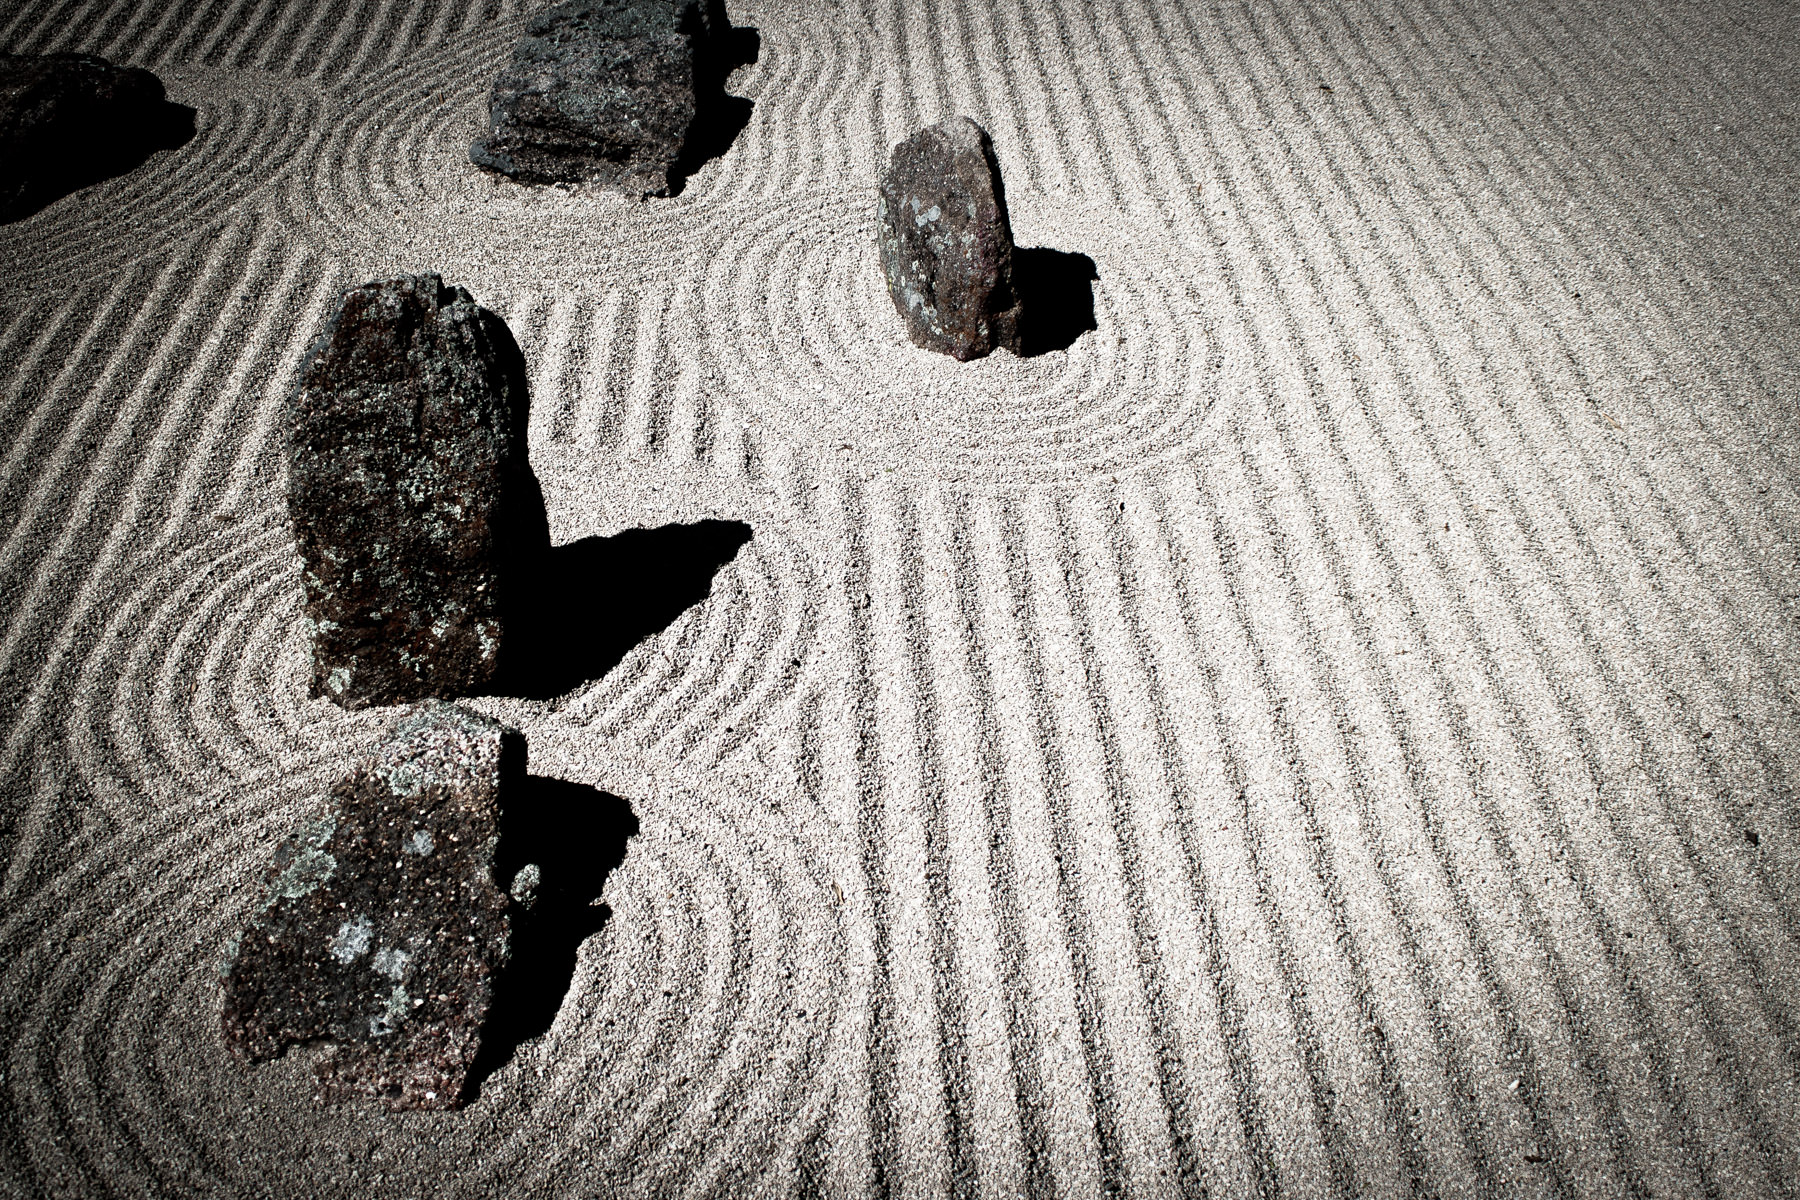 A zen garden in the Japanese Garden at the Fort Worth Botanic Gardens, Texas.